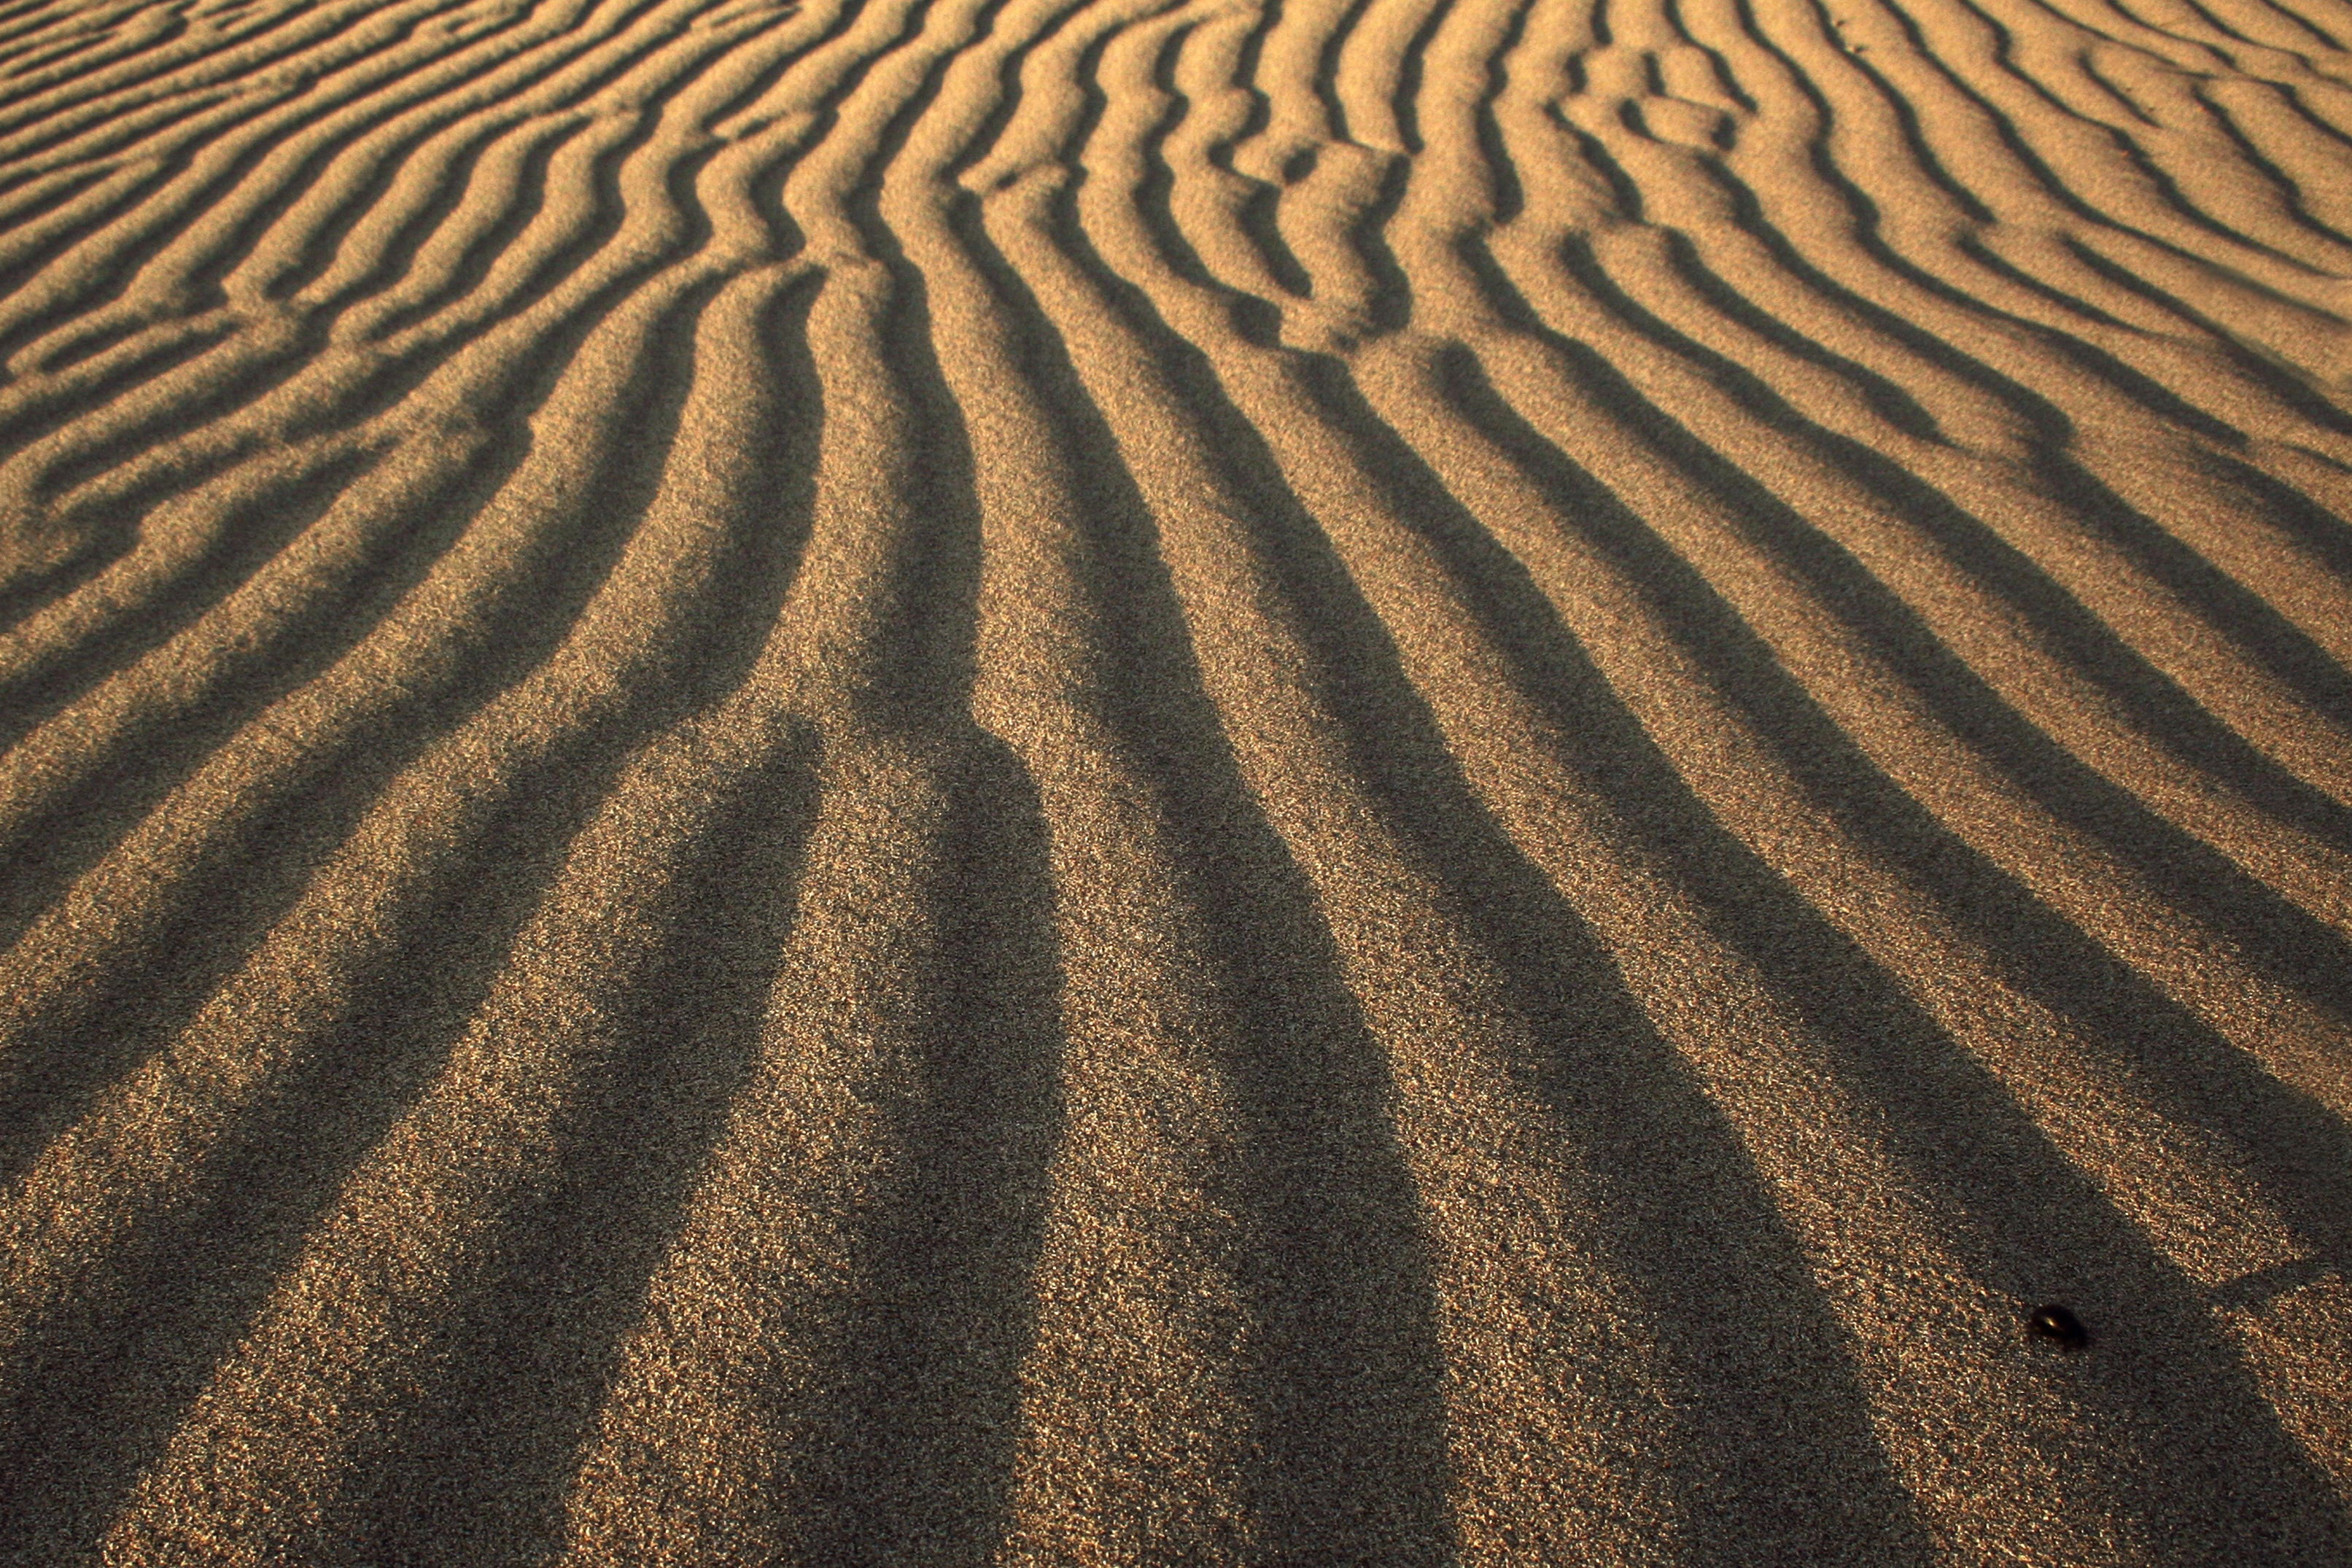 Wind forms ripple patterns in the sand of Fethiye desert